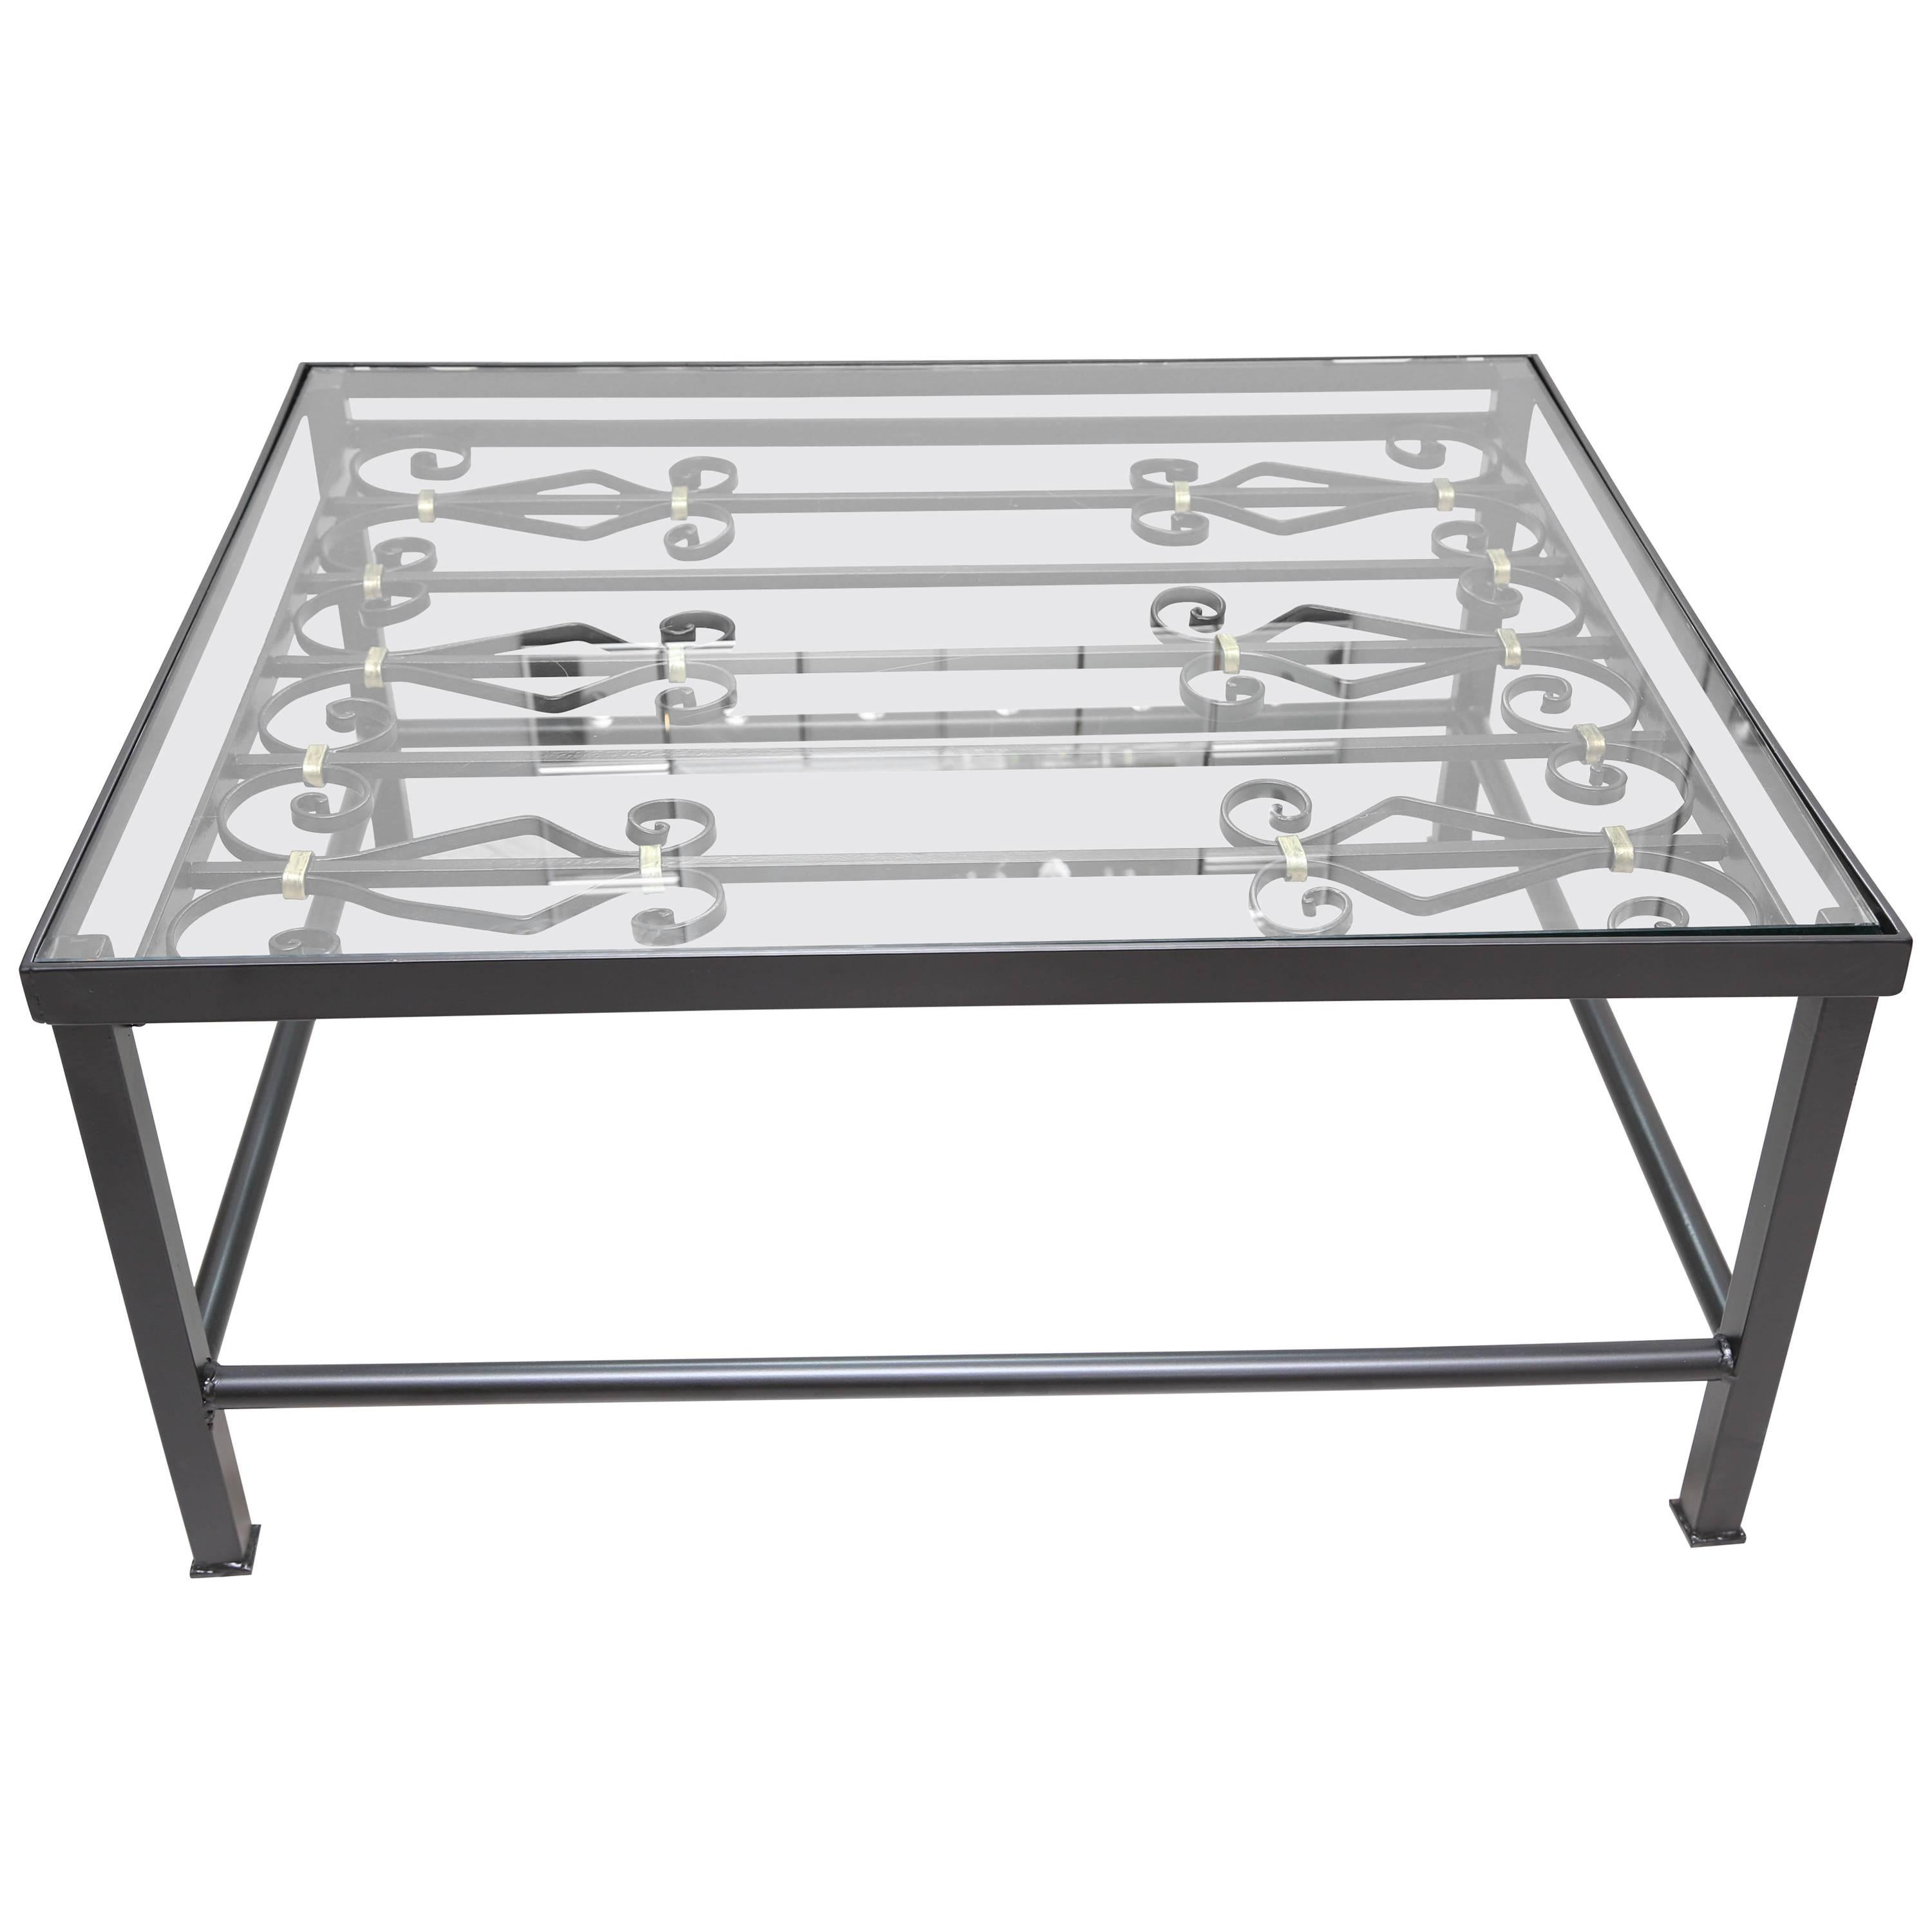 Black Wrought Iron Coffee Table For Sale